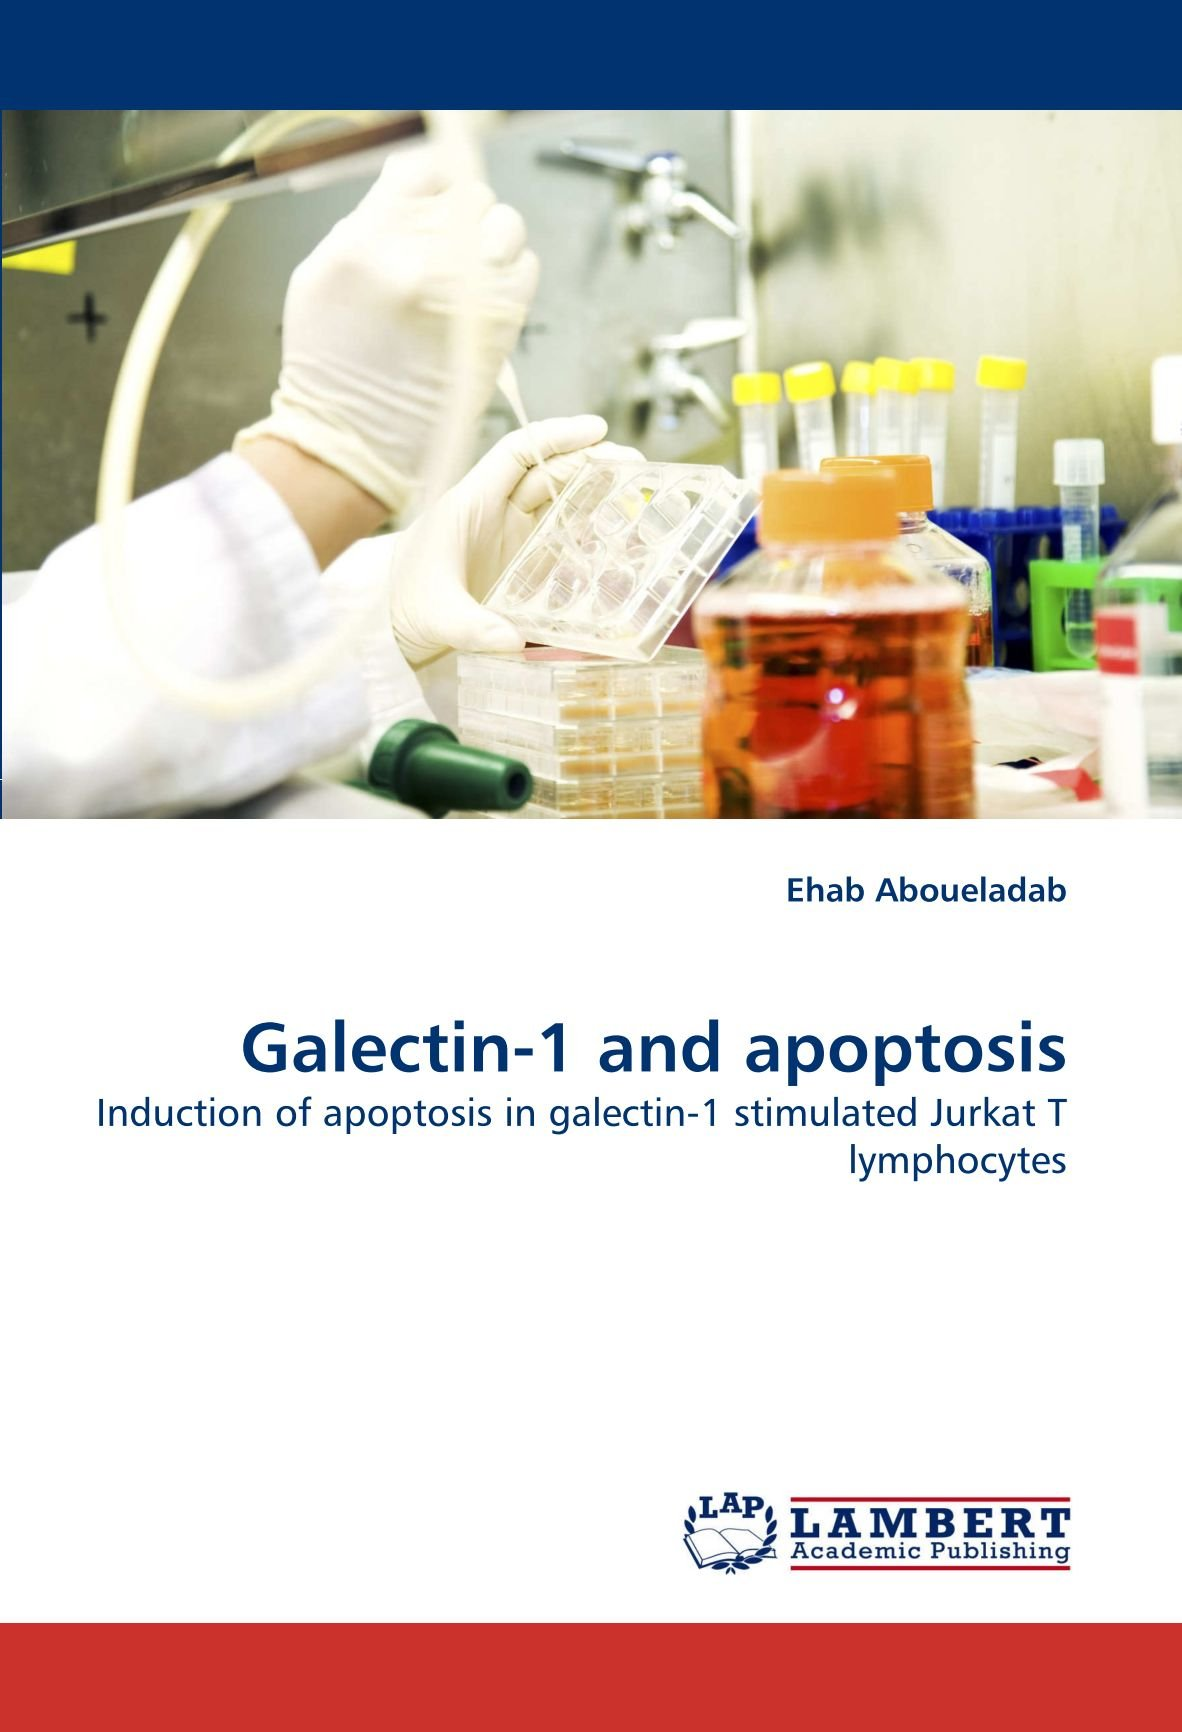 7add9900d664 Galectin-1 and apoptosis  Induction of apoptosis in galectin-1 stimulated  Jurkat T lymphocytes Paperback – May 7